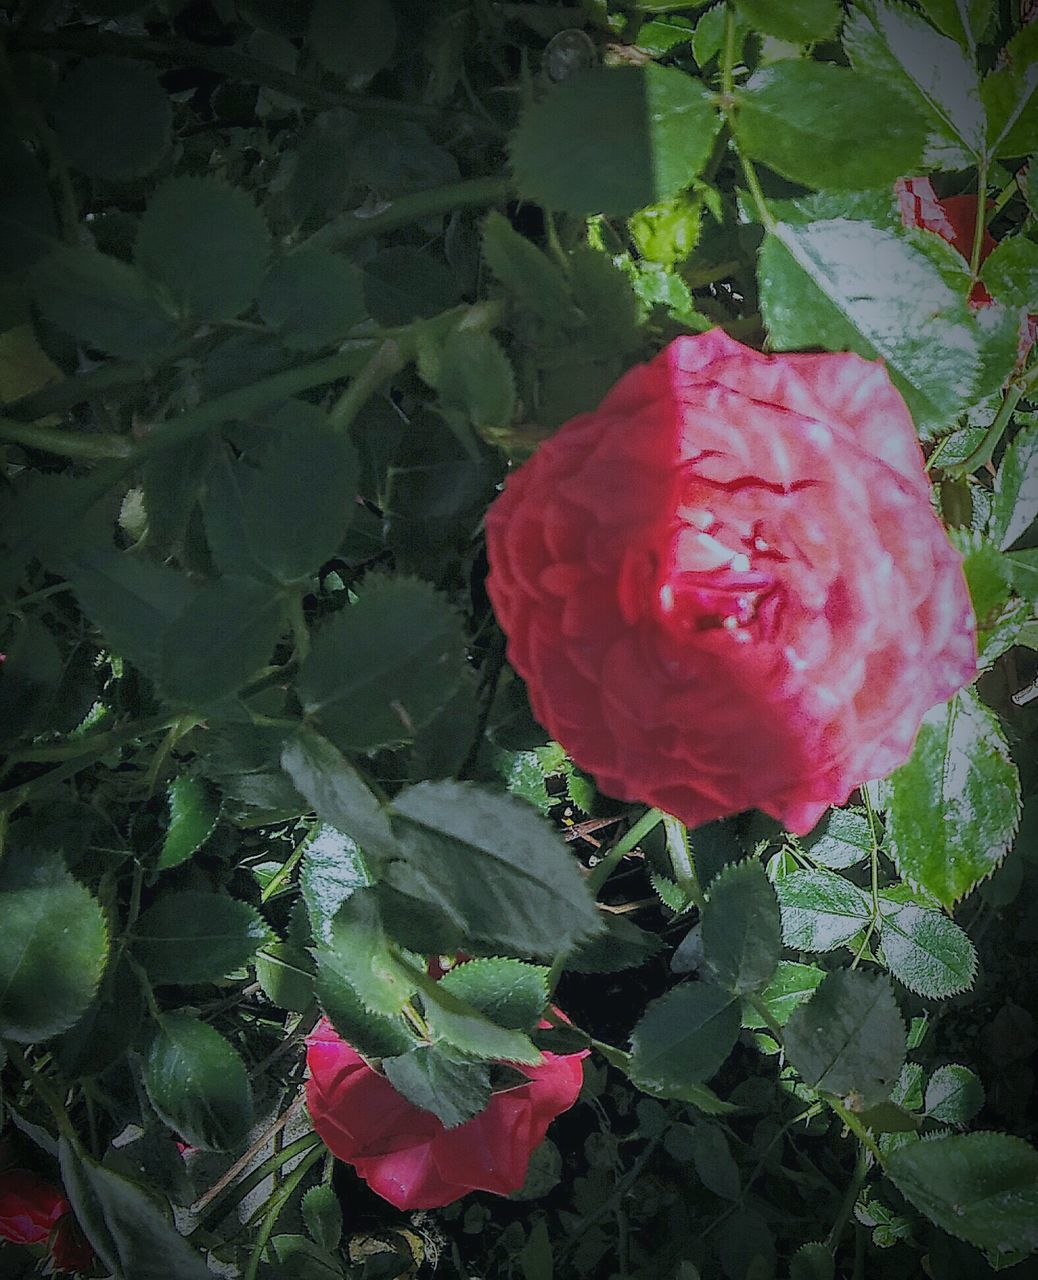 leaf, growth, flower, beauty in nature, nature, petal, plant, red, fragility, freshness, no people, outdoors, pink color, day, rose - flower, flower head, green color, blooming, close-up